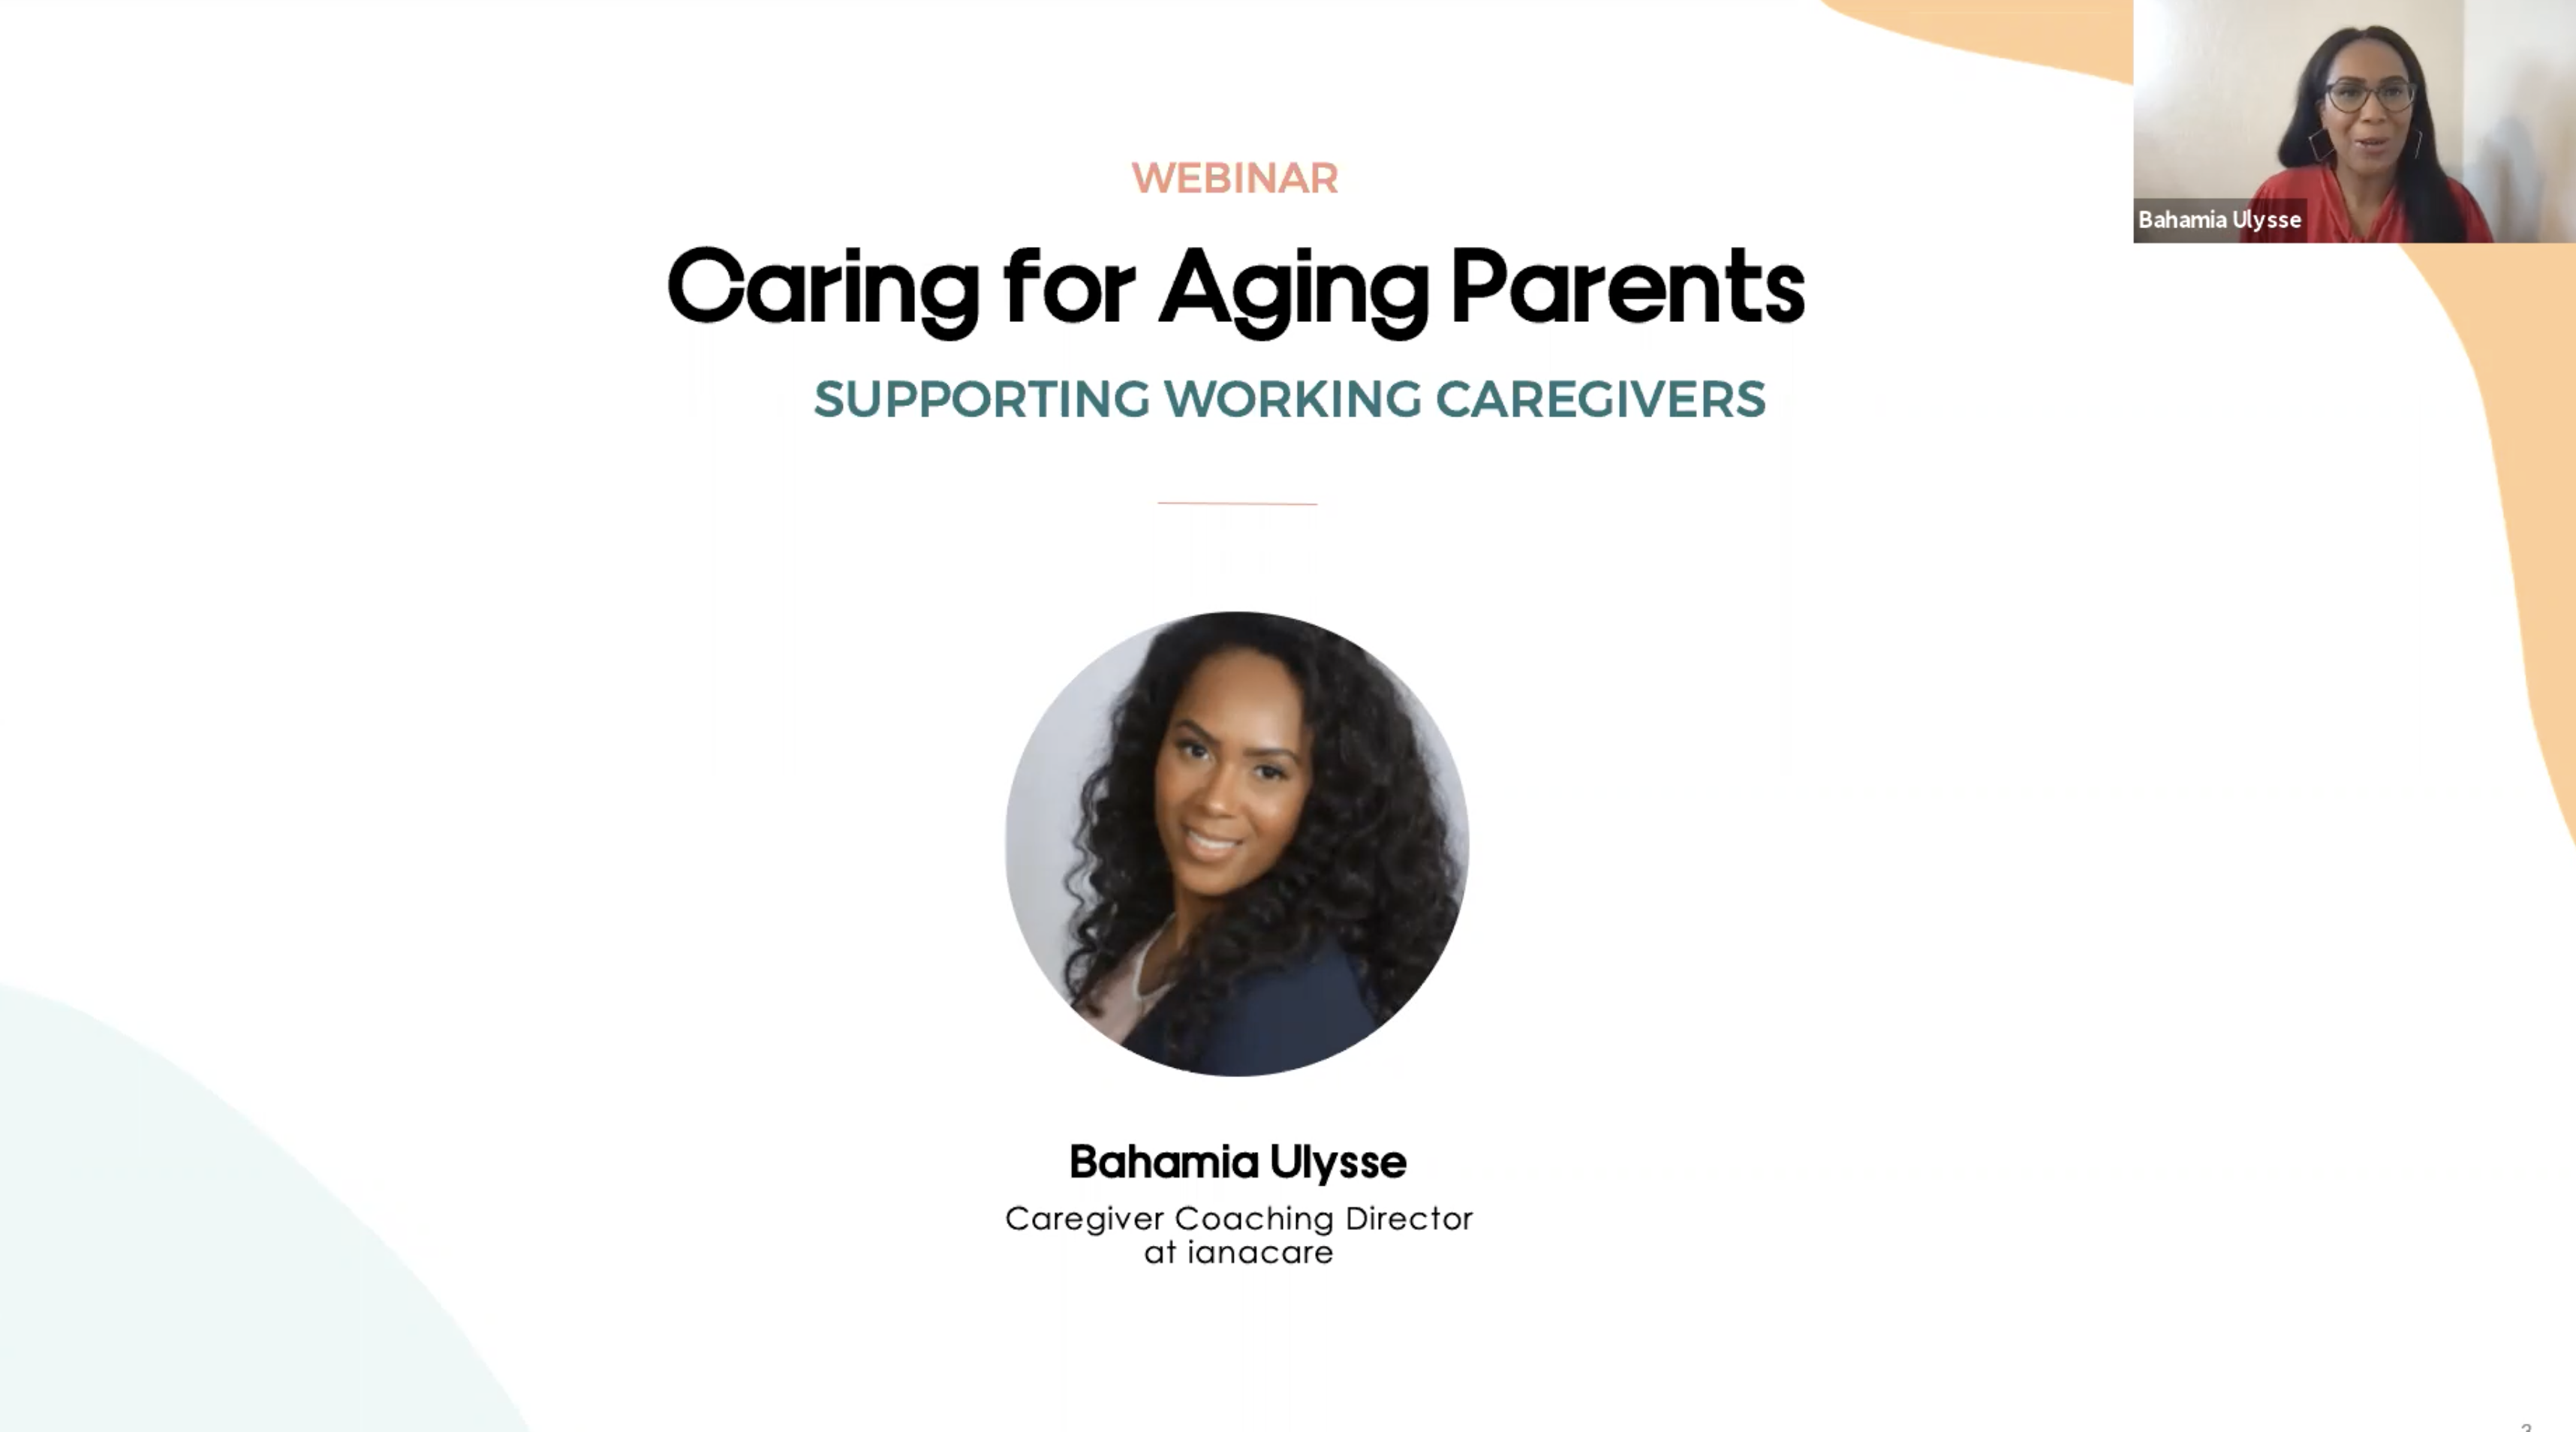 Watch:Caring for Aging Parents